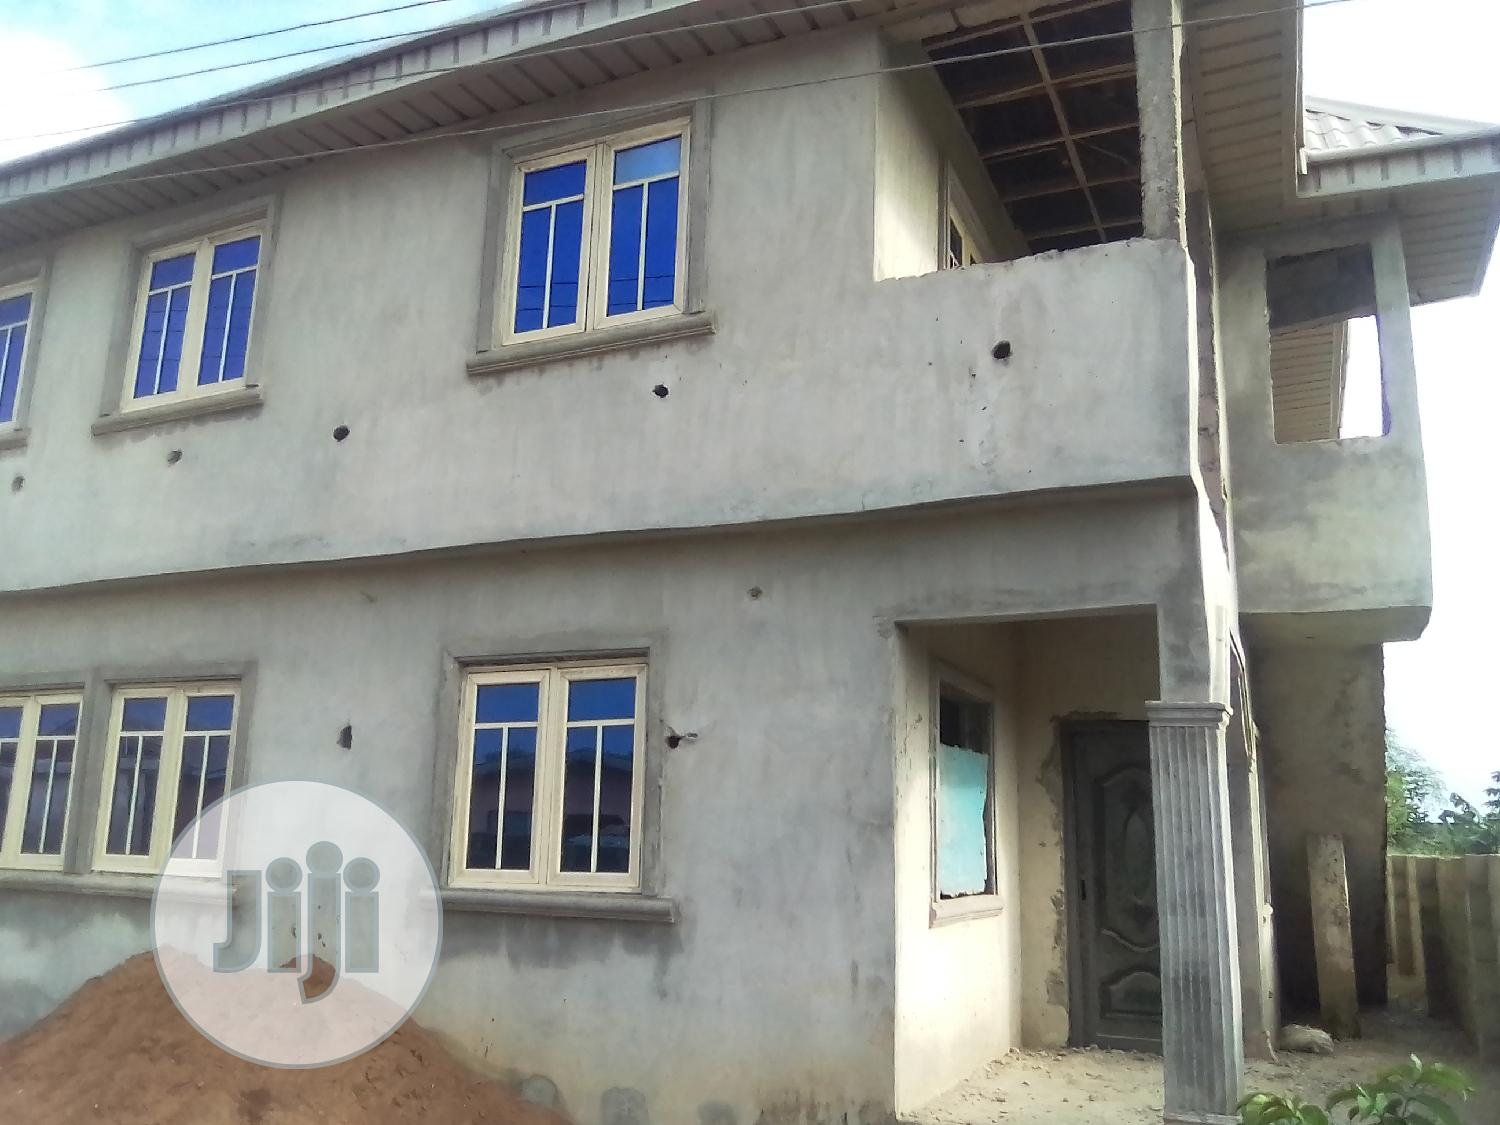 Well Built Duplex For Sale With Registered Survey, Deed And Land Receipt